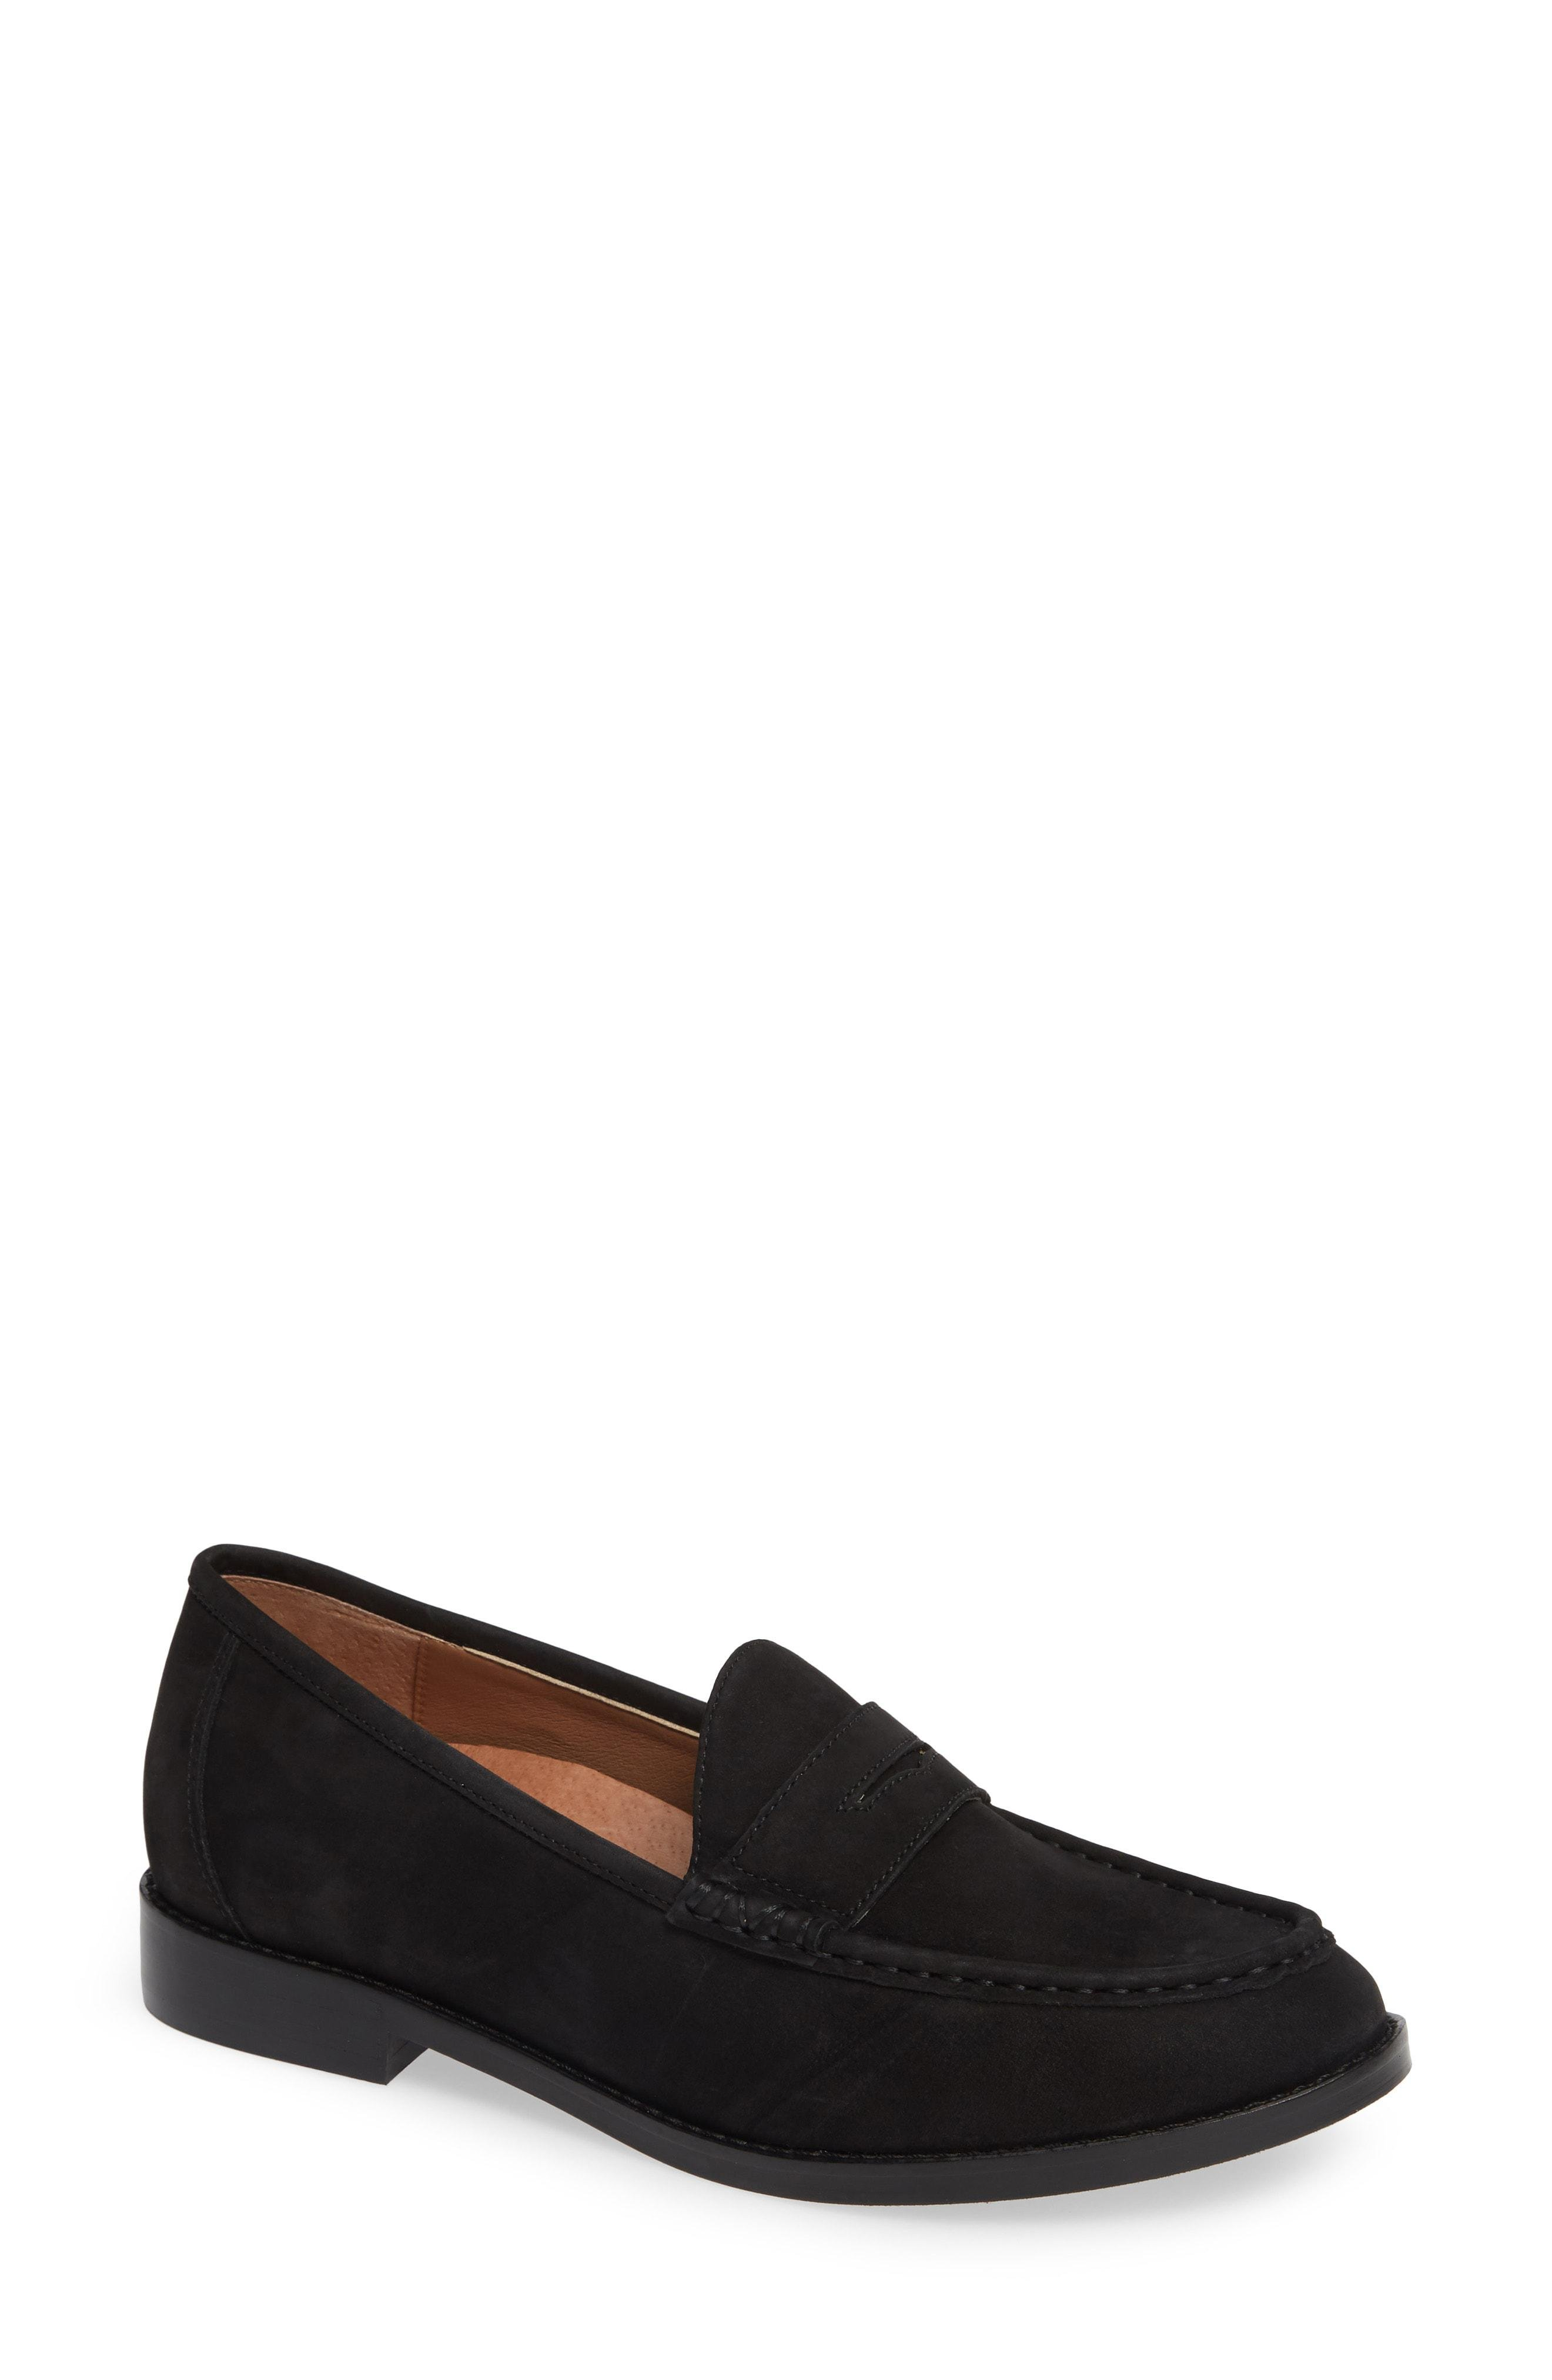 243efc70b48 Vionic. Women s Waverly Loafer